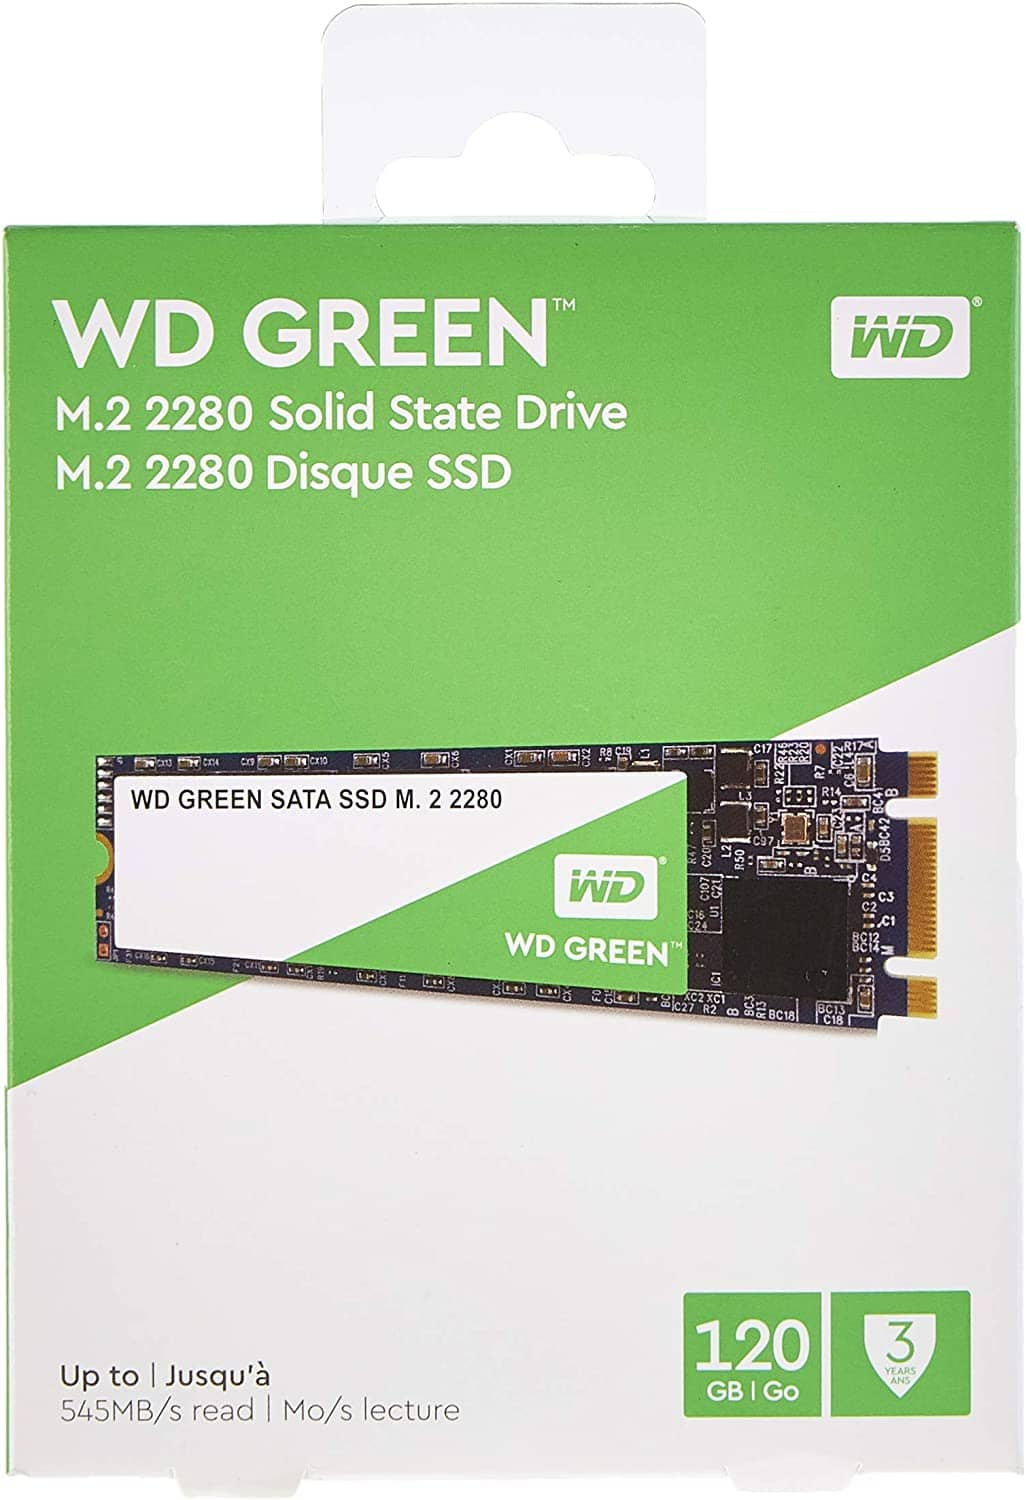 ssd wd element green (1)